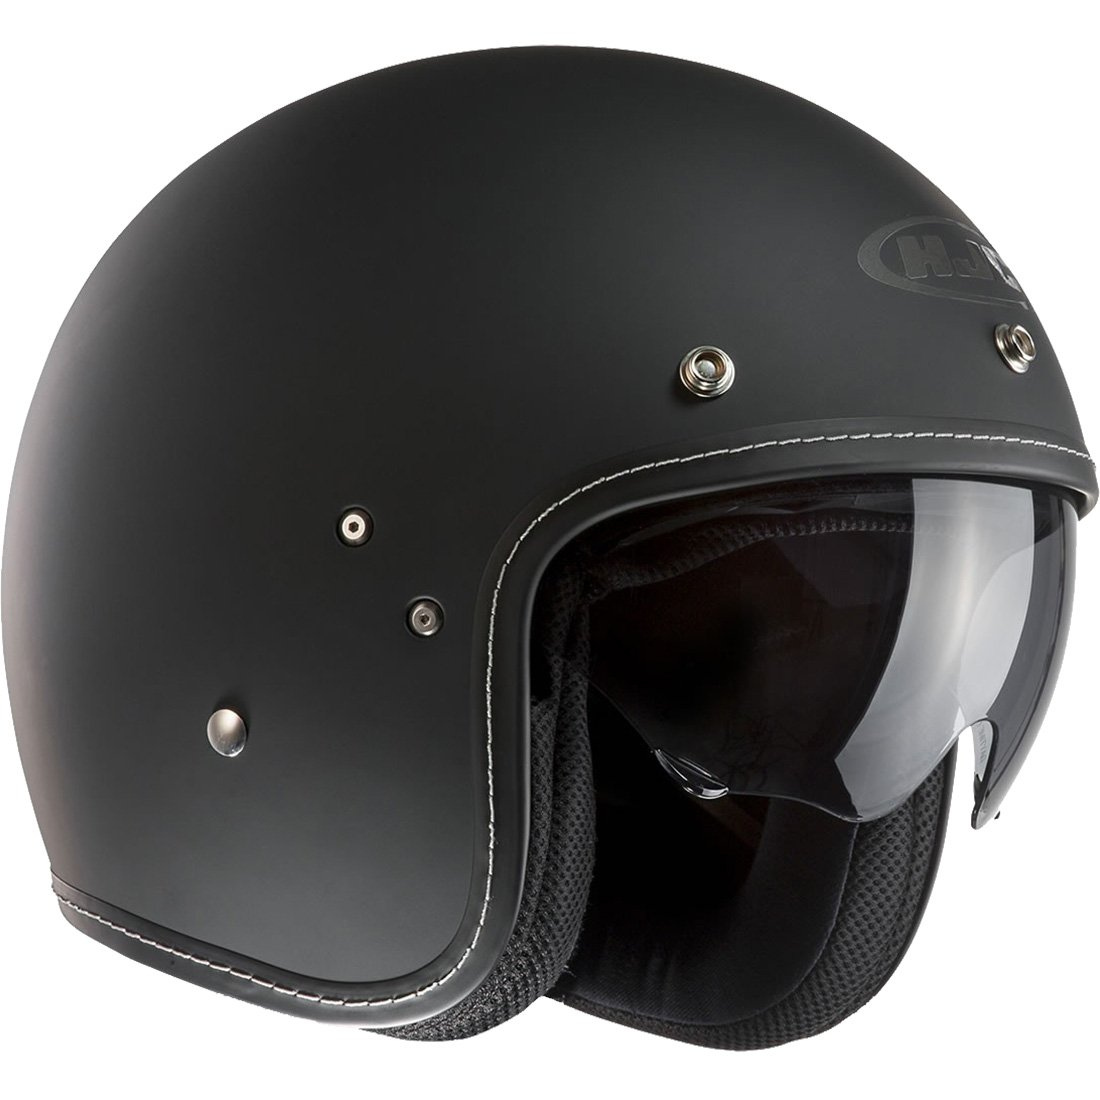 HJC FG-70s Open Face Motorcycle Helmet